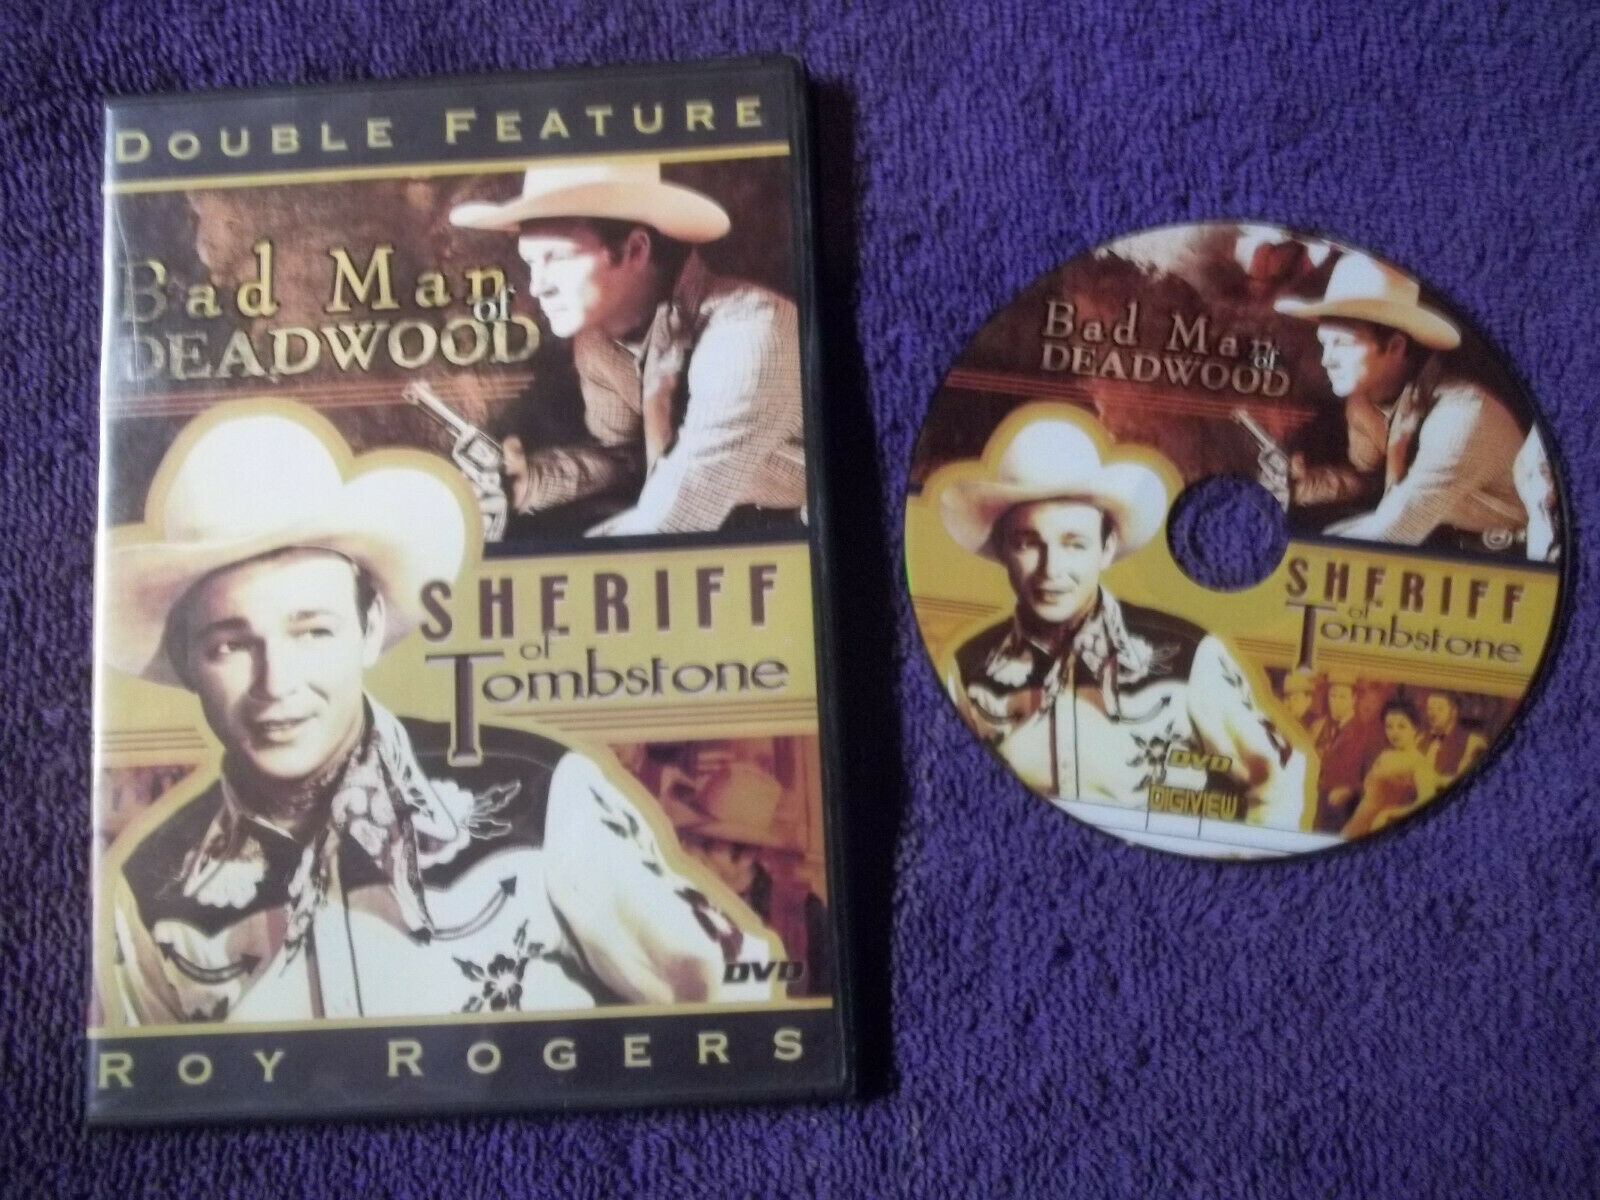 2-ROY ROGERS-BAD MAN Of DEADWOOD SHERIFF Of TOMBSTONE -DVD - $8.00